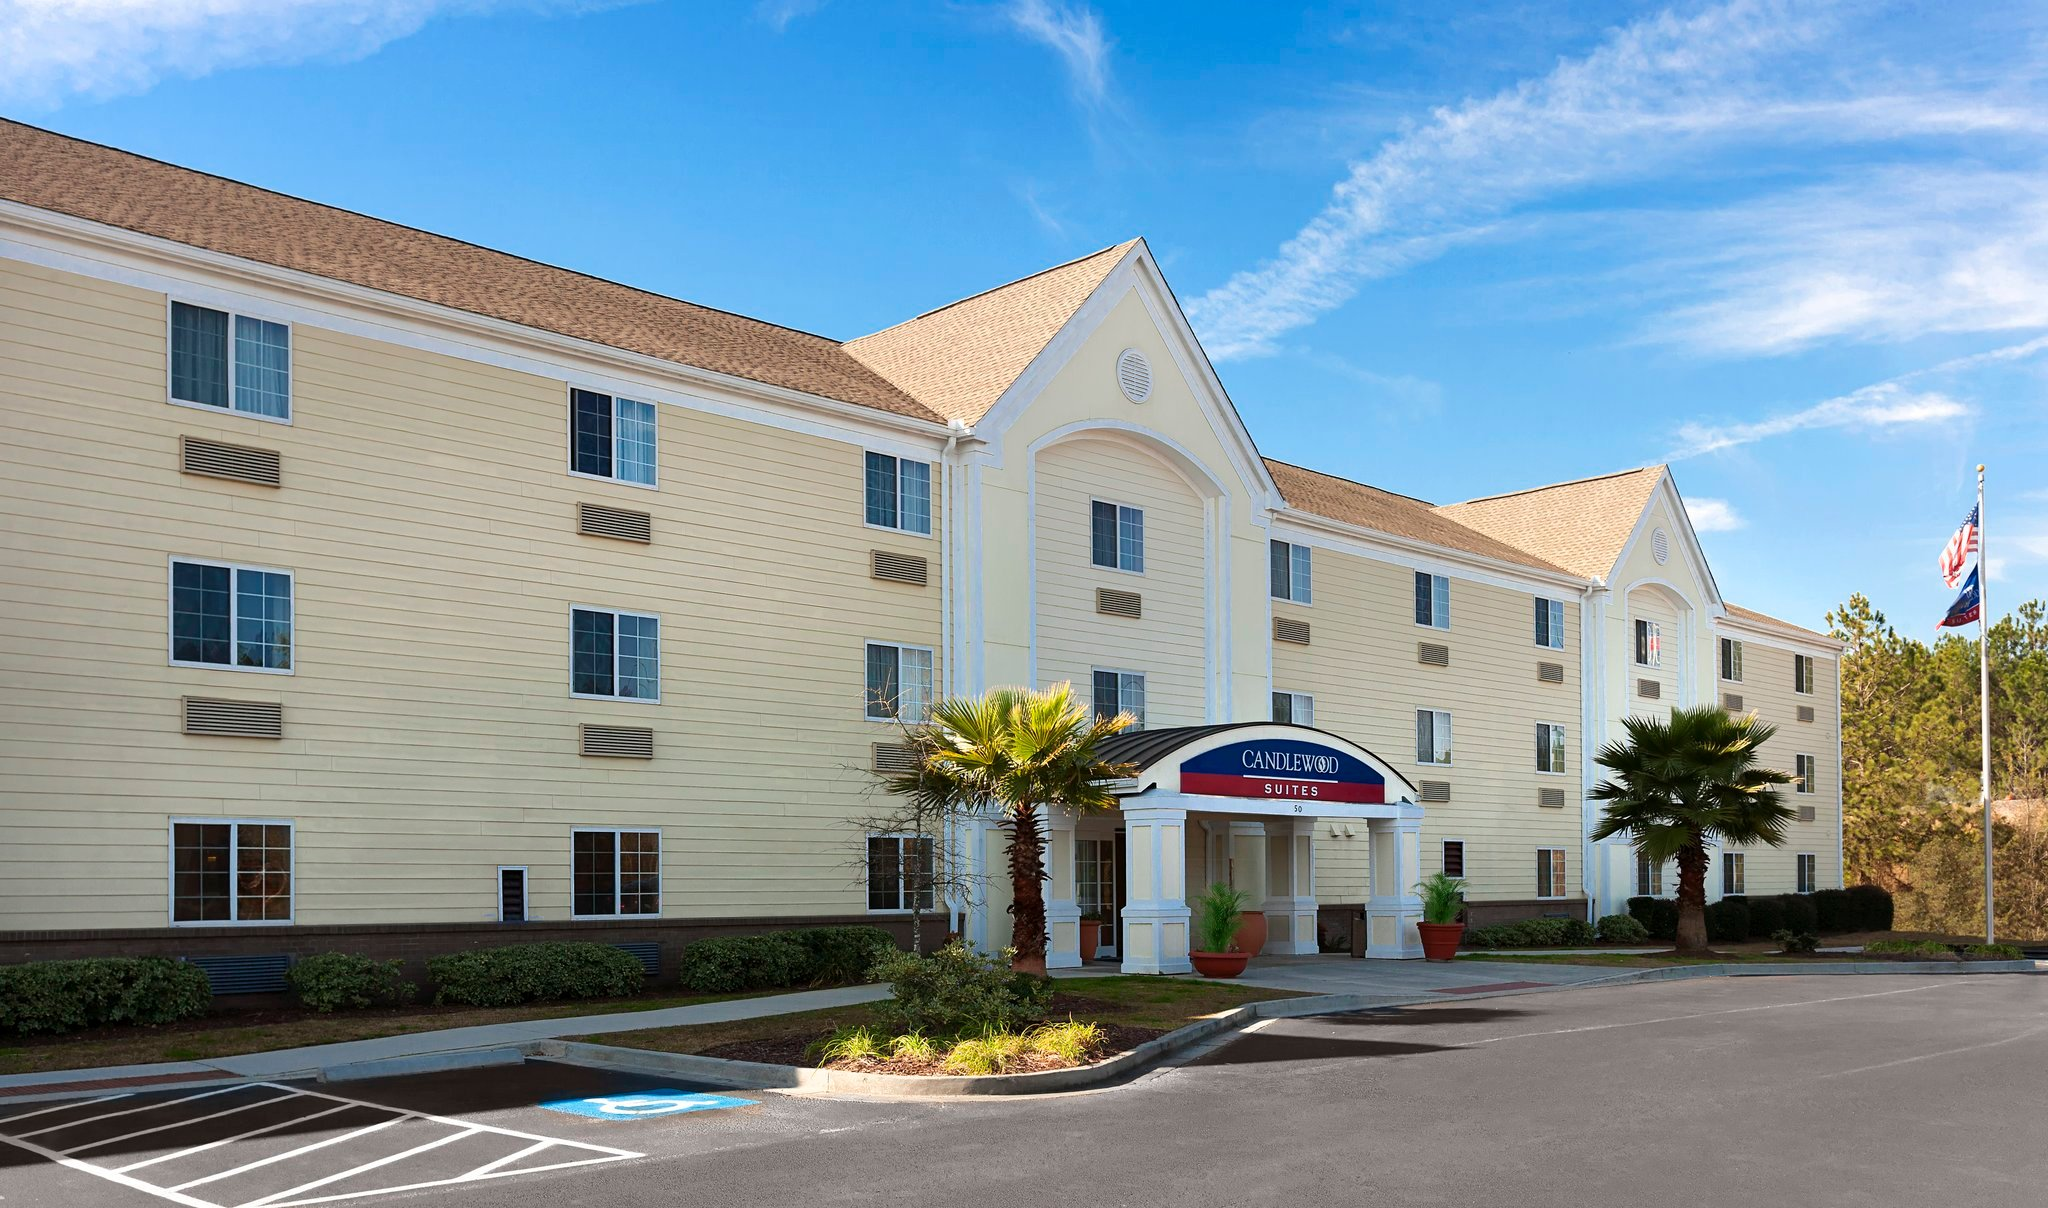 Savannah ga casino hotels